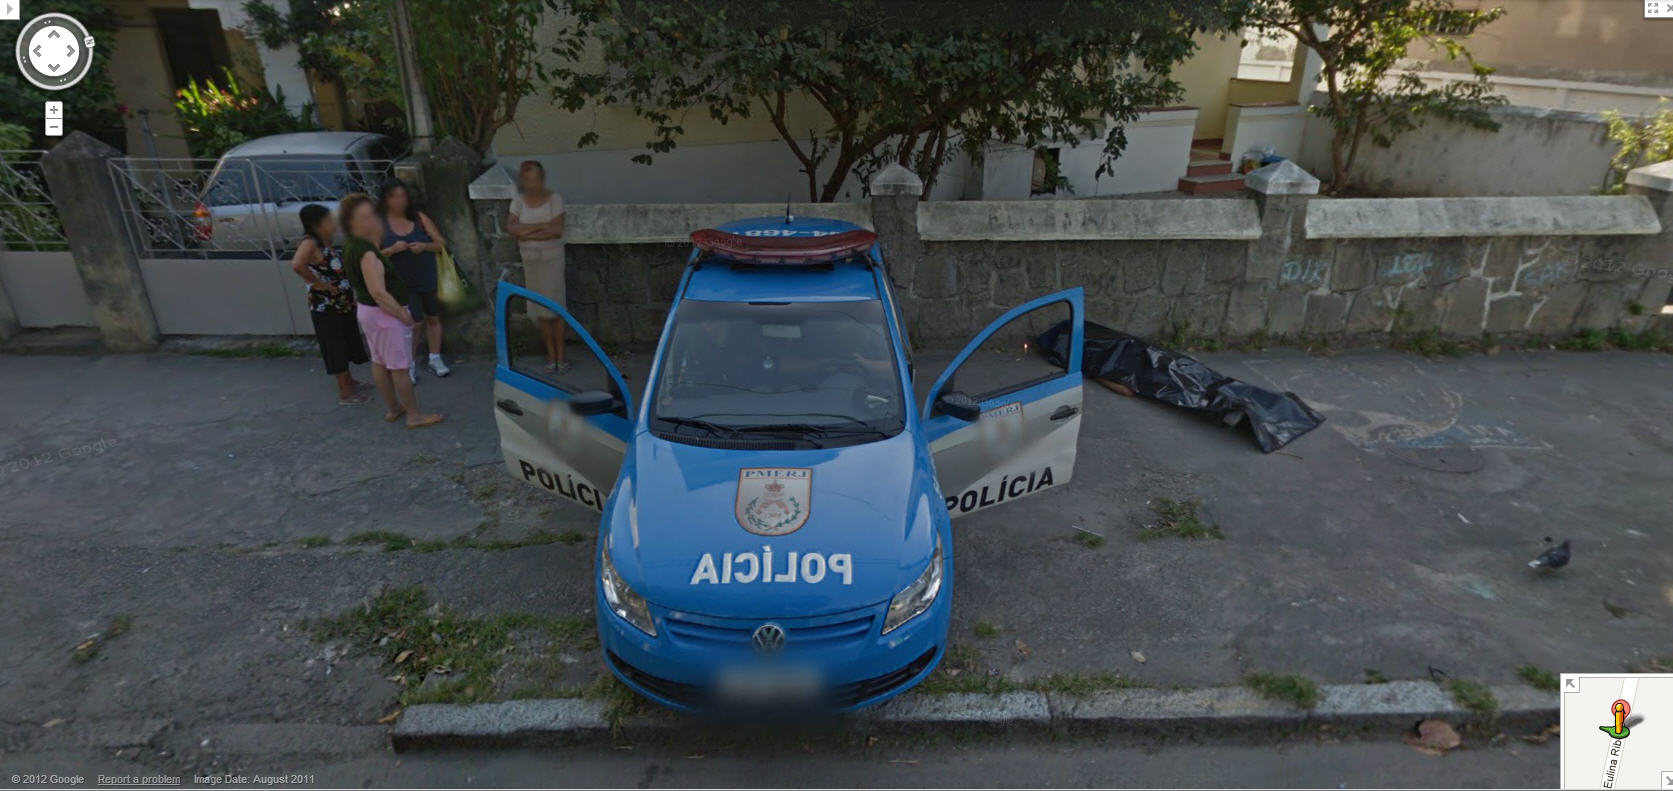 ... -so-street-view-funny-from-rio-another-corpse-via-google-street-view